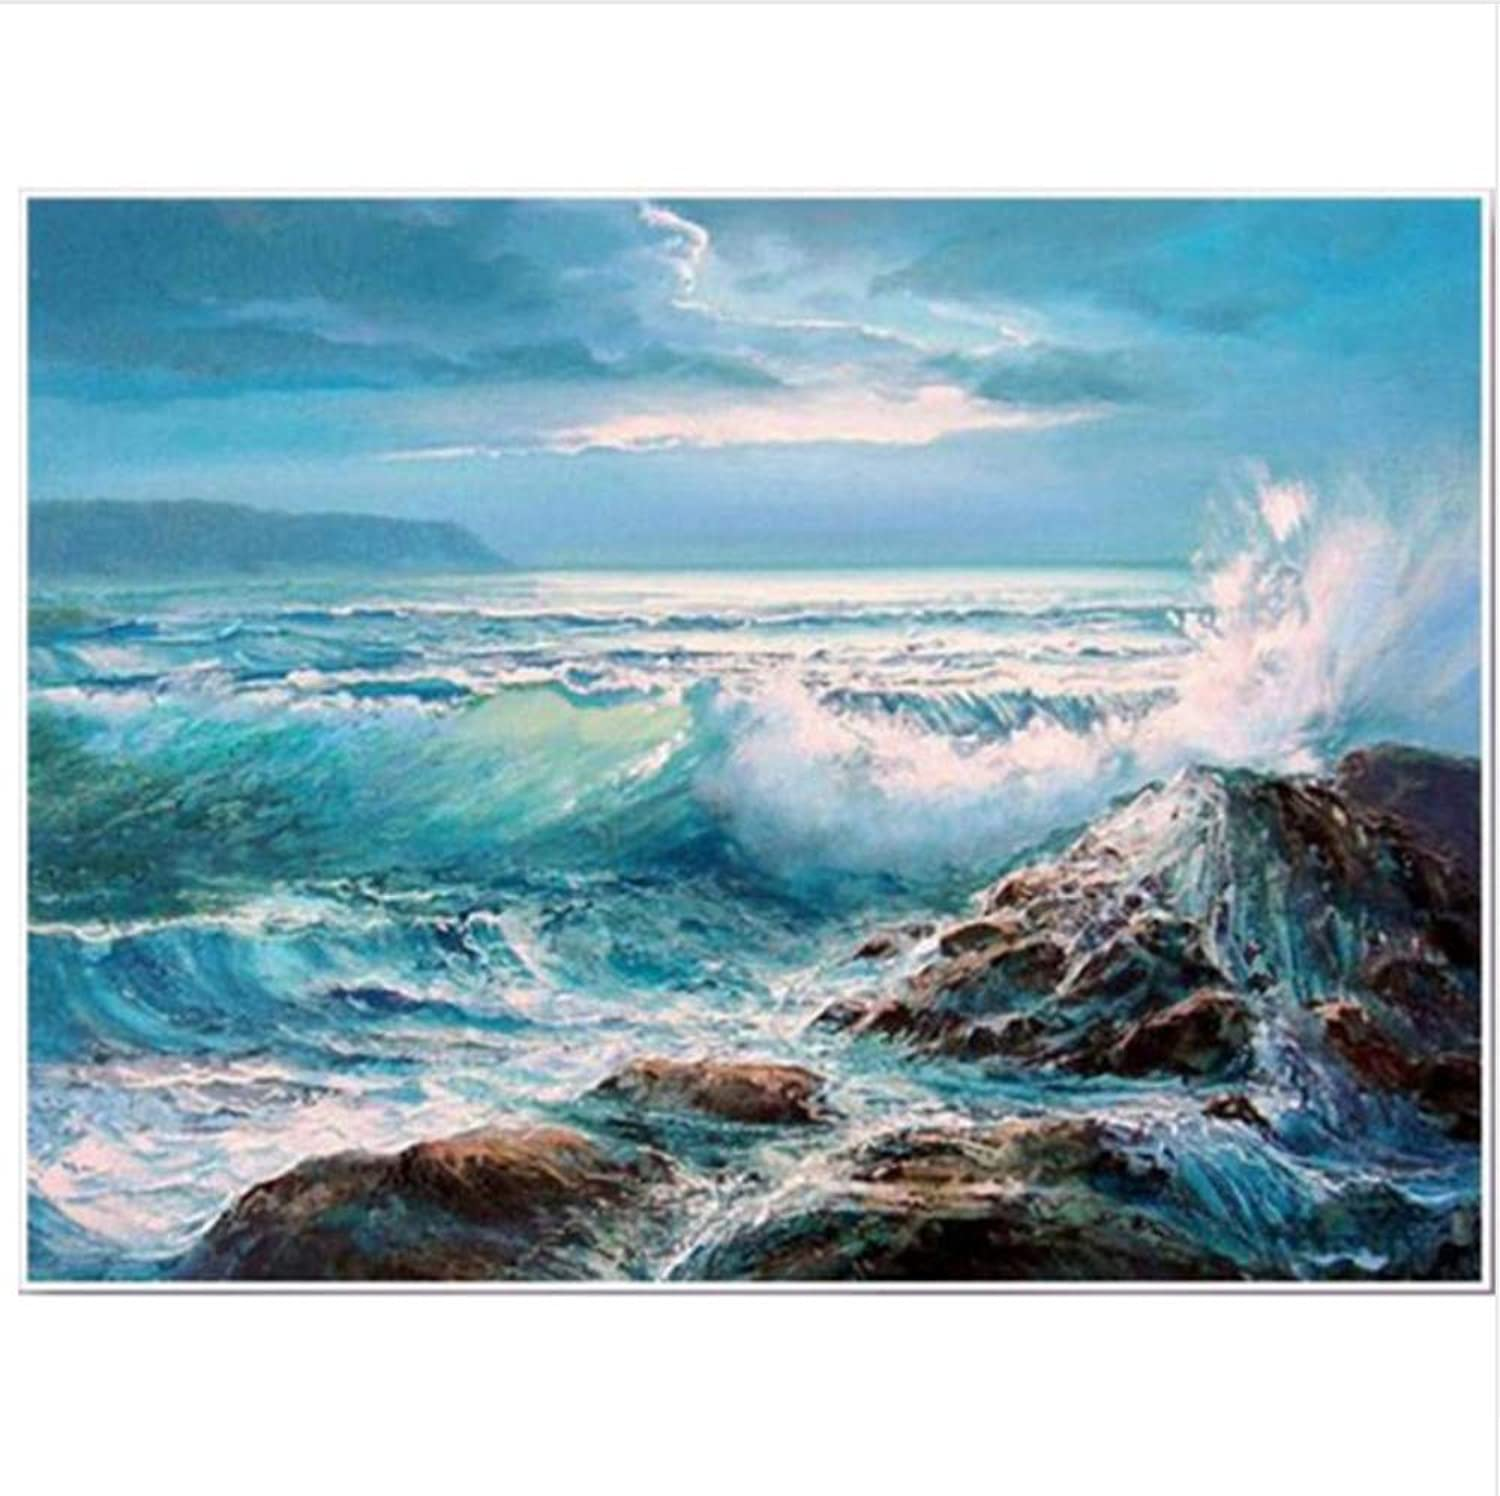 With Brushes DIY Ocean Wave Reef Home Decor Acrylic Painting Painting by Numbers for Adults-Rahmen 40X50Cm B07PDVRKSY | Um Zuerst Unter ähnlichen Produkten Rang